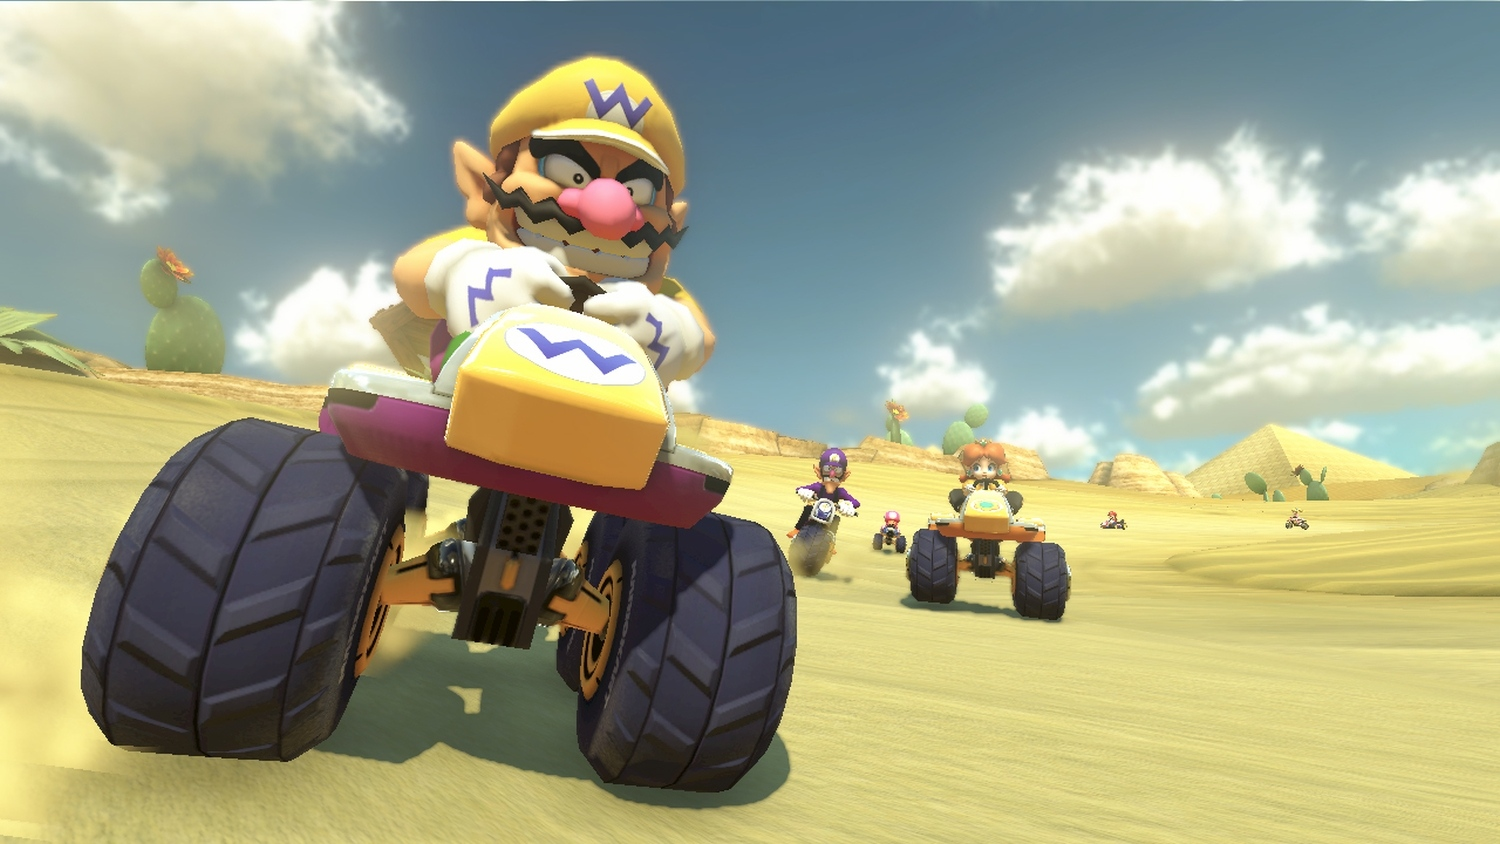 Nearly half of all Wii U owners also own Mario Kart 8